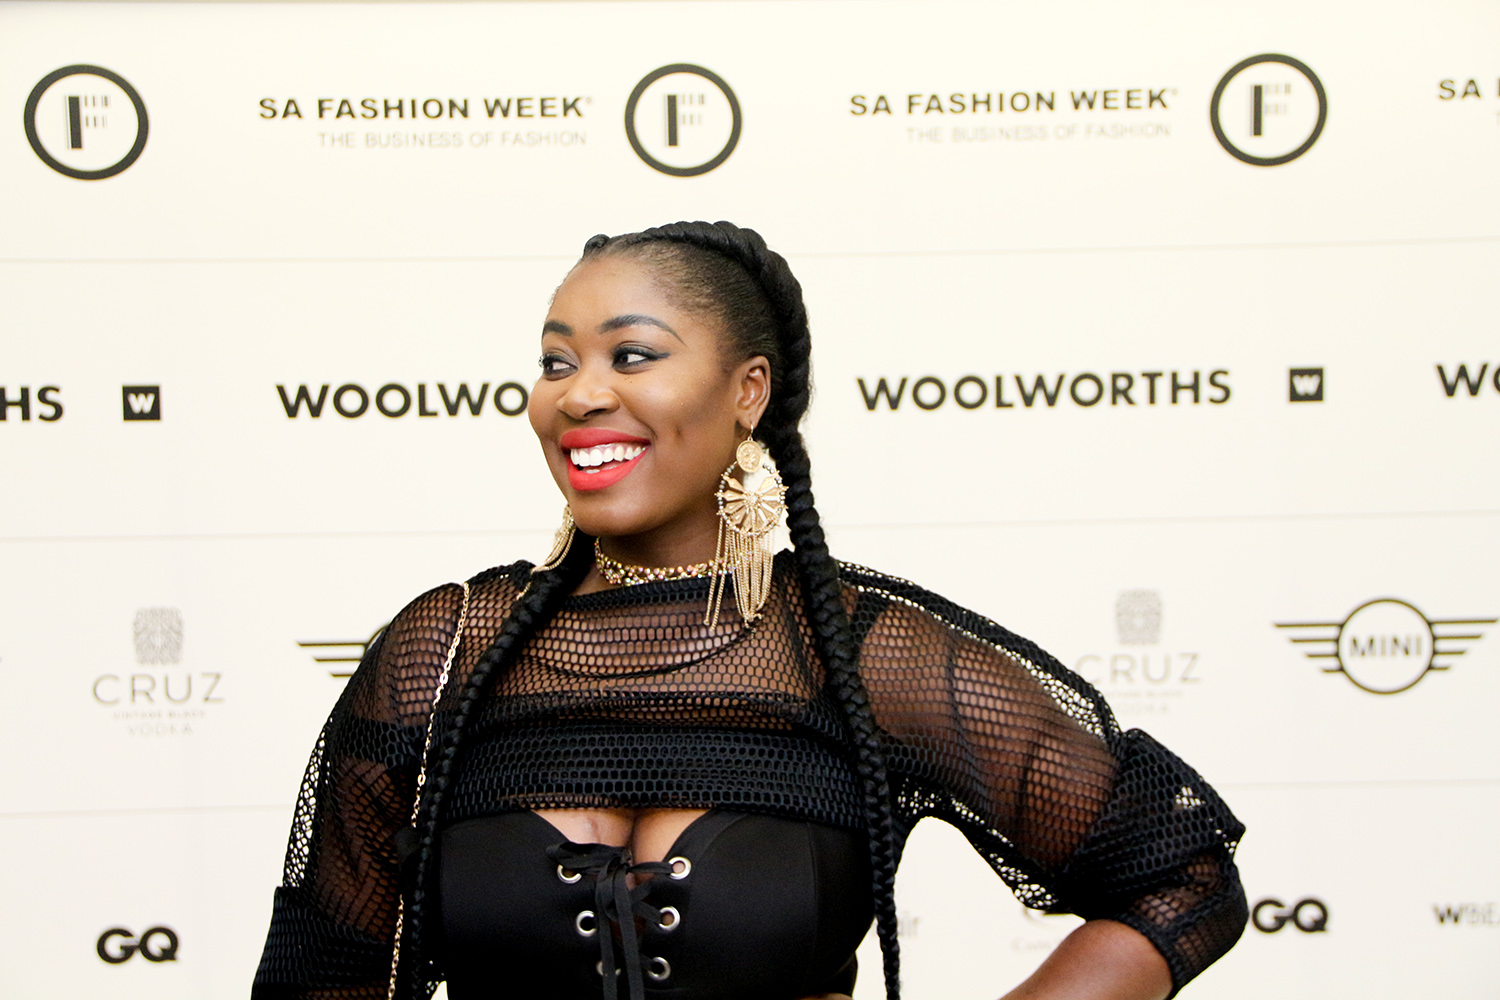 SAFW 2018 WEARING ERRE FASHION: WEAR A BREATH OF ERRE